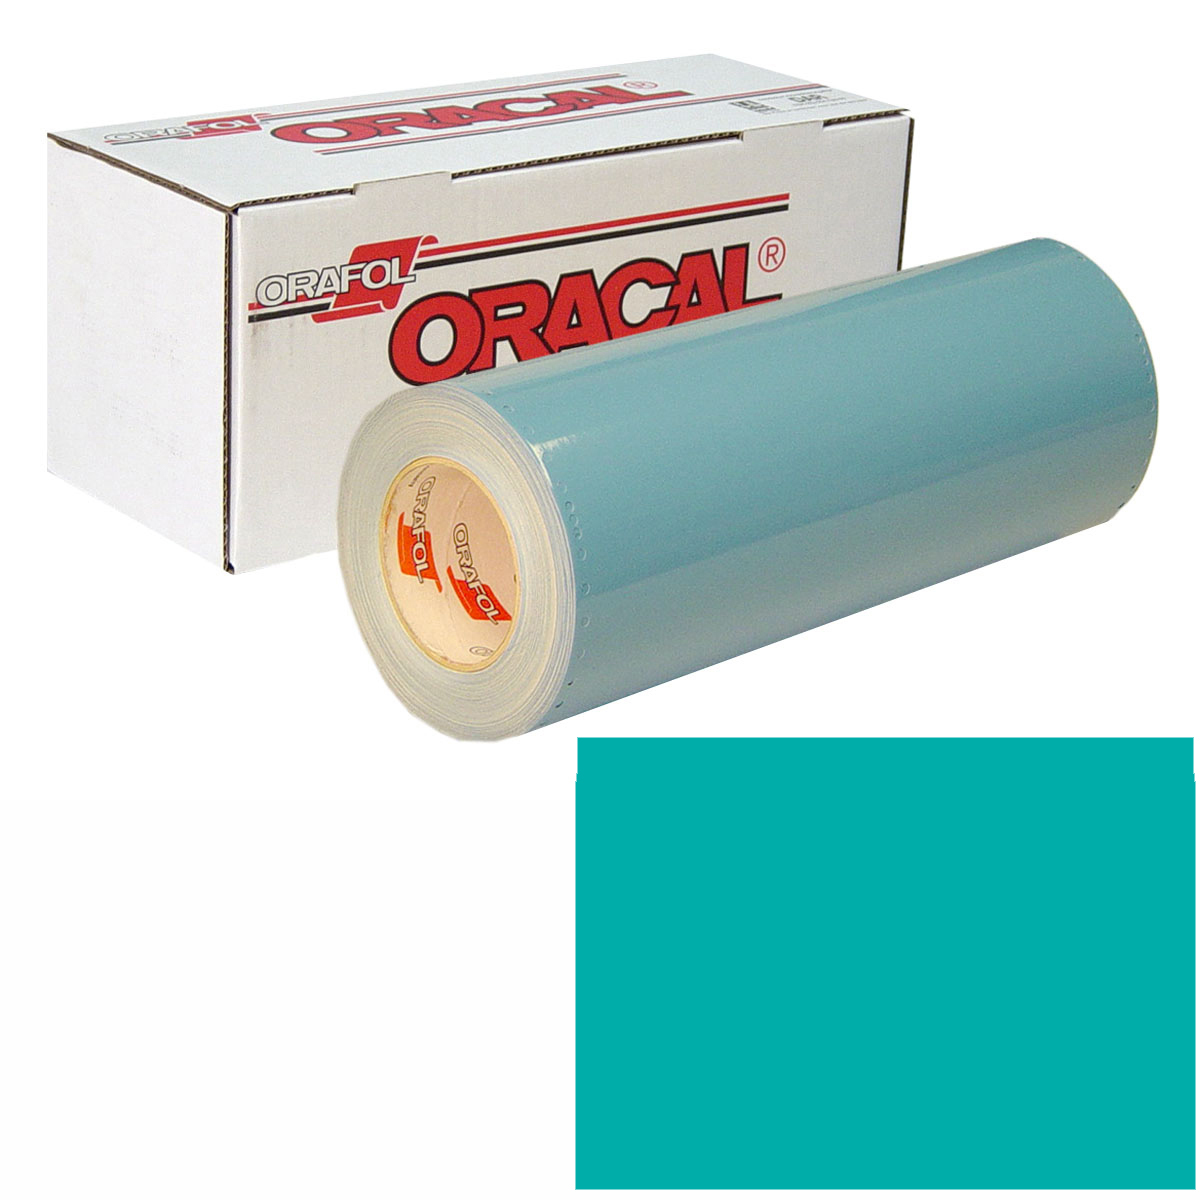 ORACAL 751 30in X 10yd 054 Turquoise